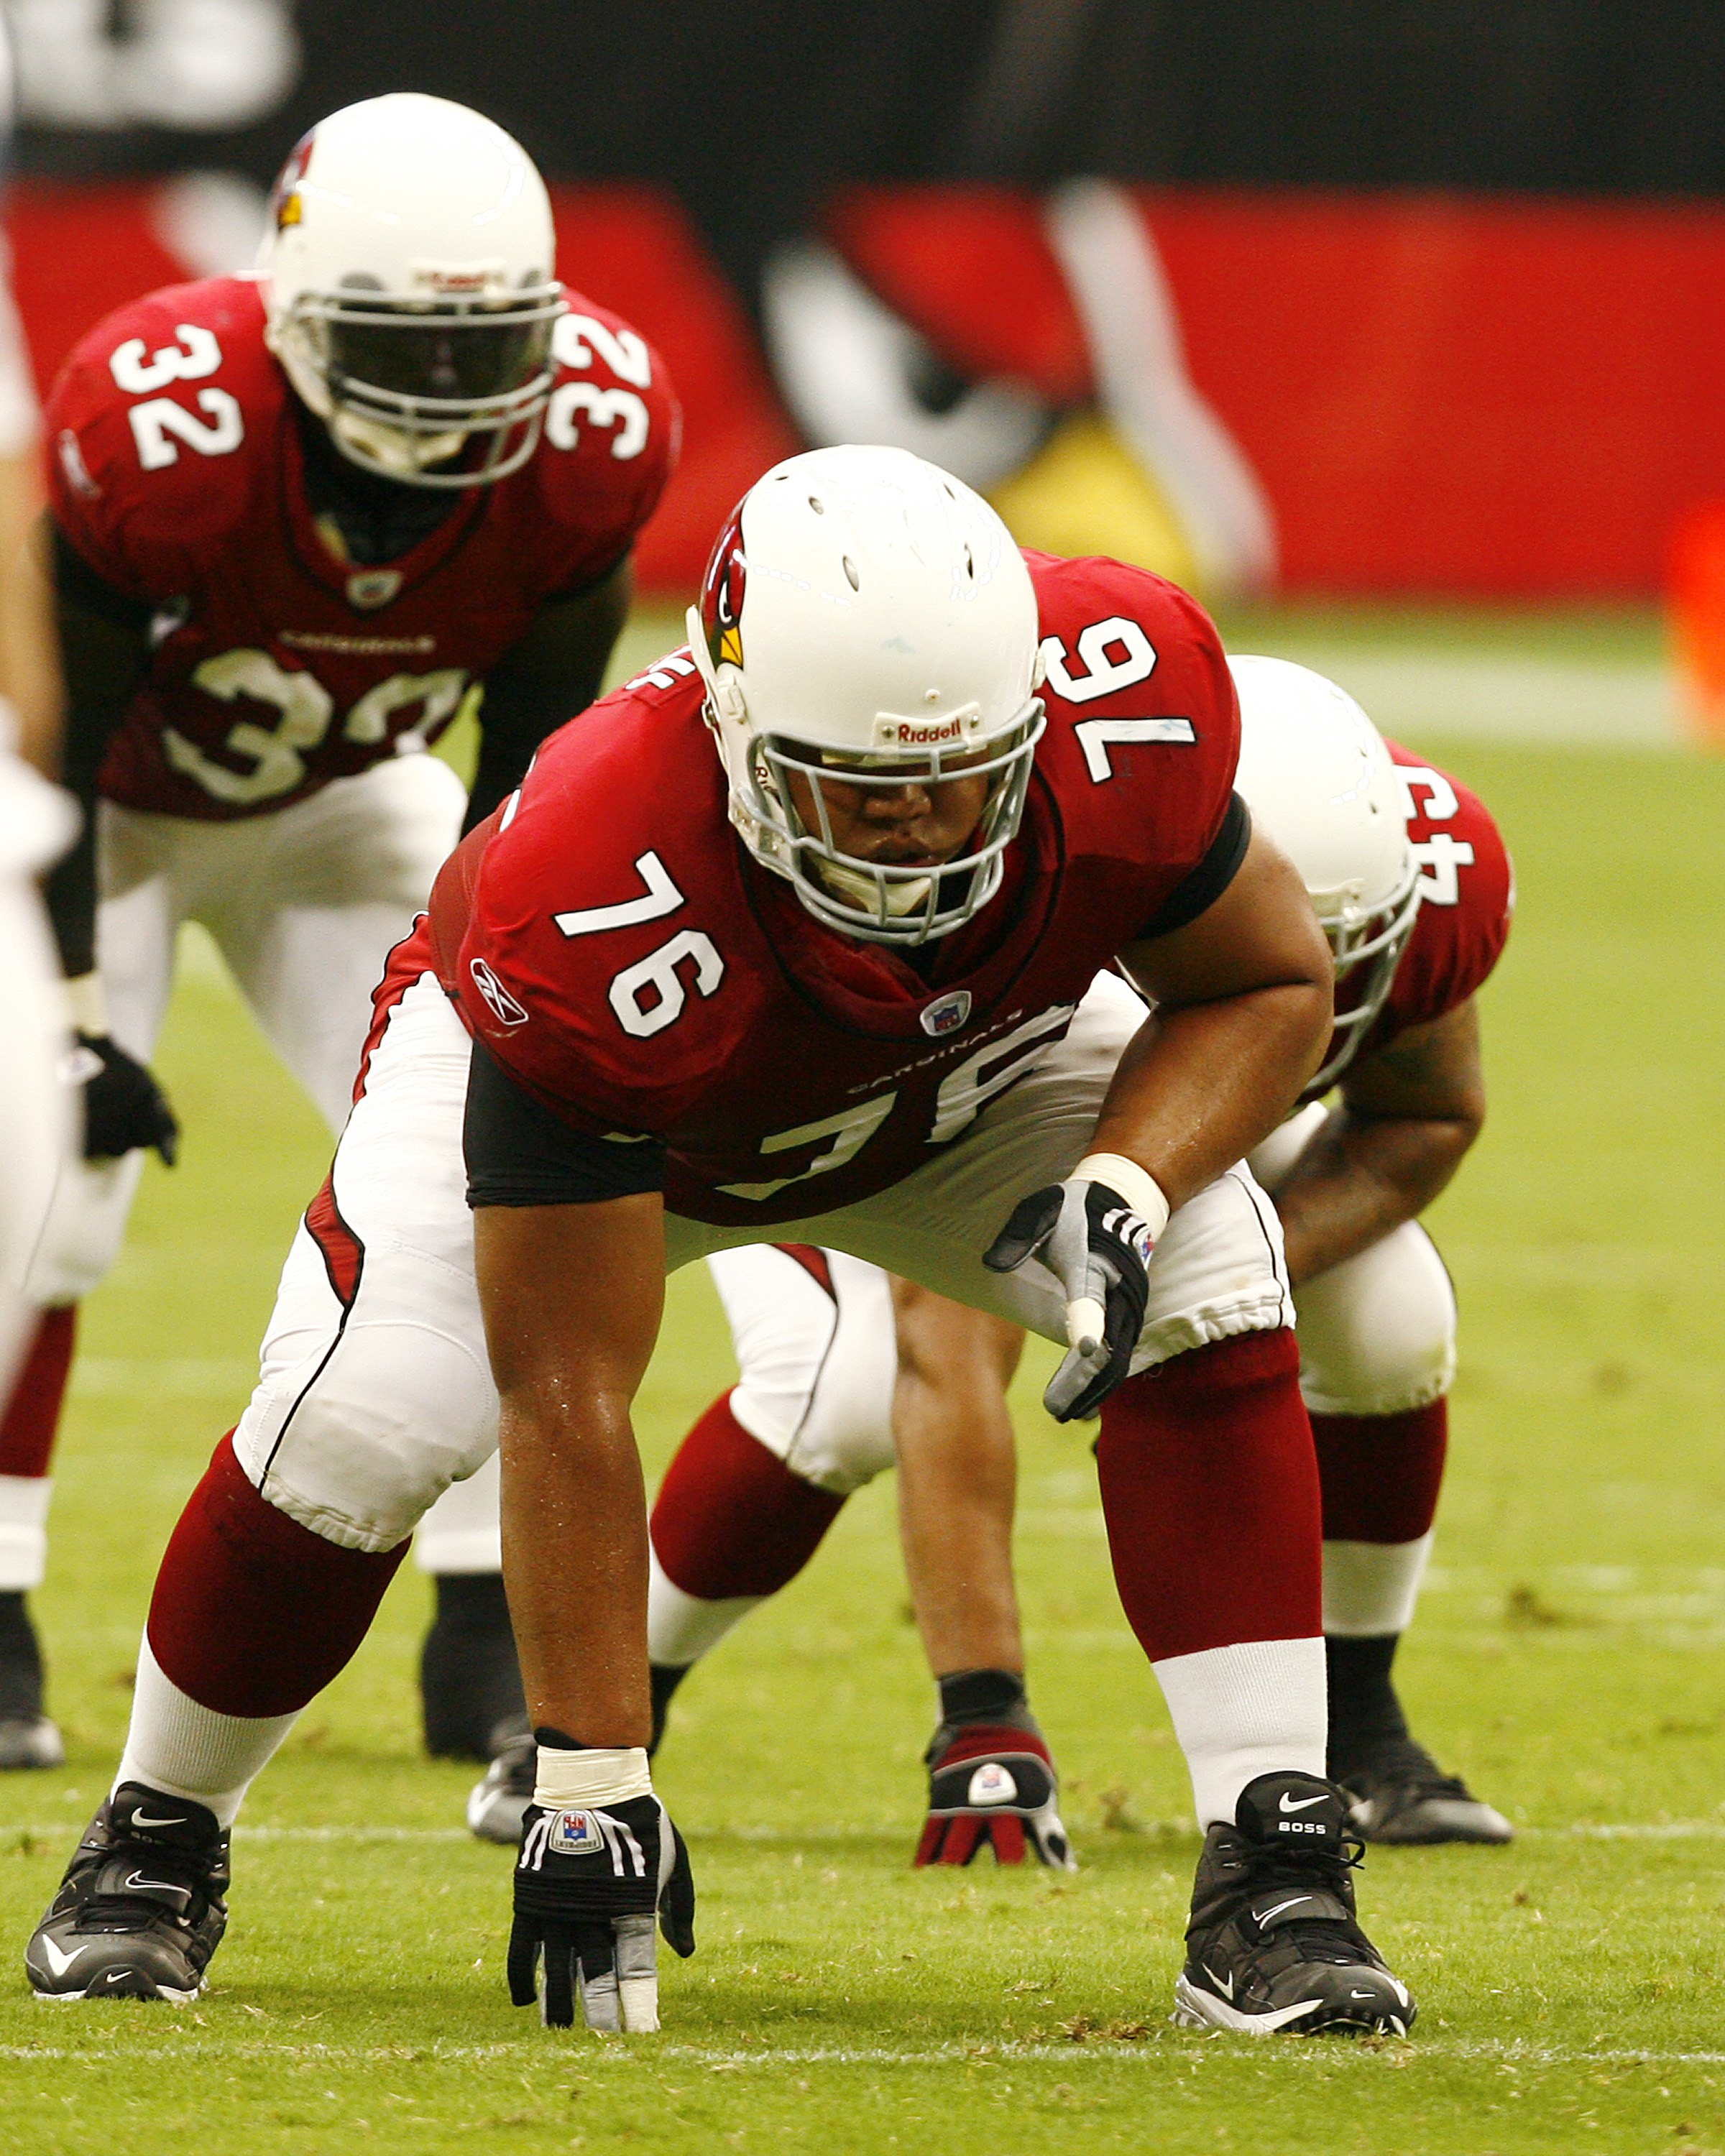 GLENDALE, AZ - SEPTEMBER 16:  Guard Deuce Lutui of the Arizona Cardinals #63 in a three-point stance against the Seattle Seahawks at University of Phoenix Stadium on September 16, 2007 in Glendale, Arizona.  The Cardinals defeated the Seahawks 23-20. (Pho